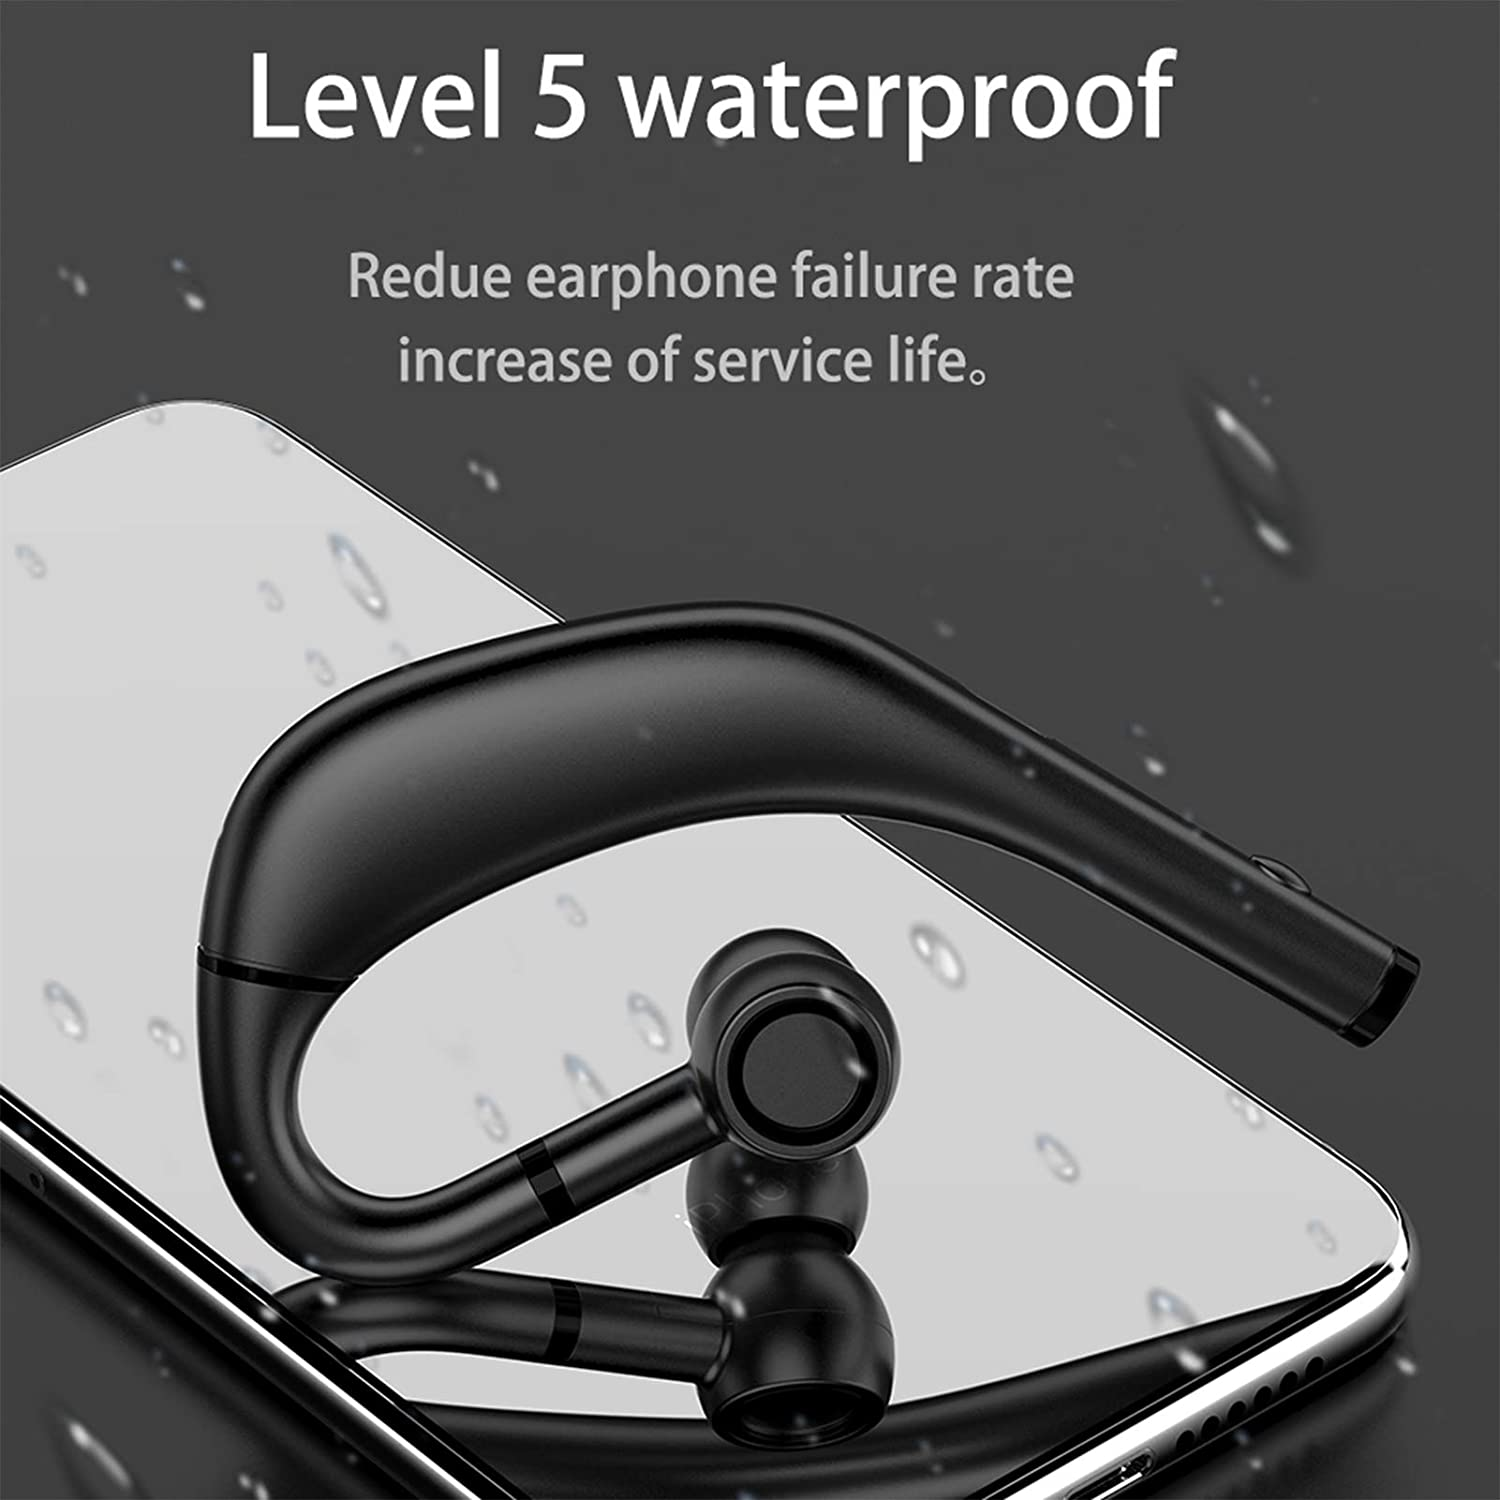 Heave Bluetooth 5.0 Headphones with Mic,True Wireless Business Earhook Waterproof&Lightweight Earbuds for Work, Home Office,Up to 240-480Hours Long Standby Time Blue